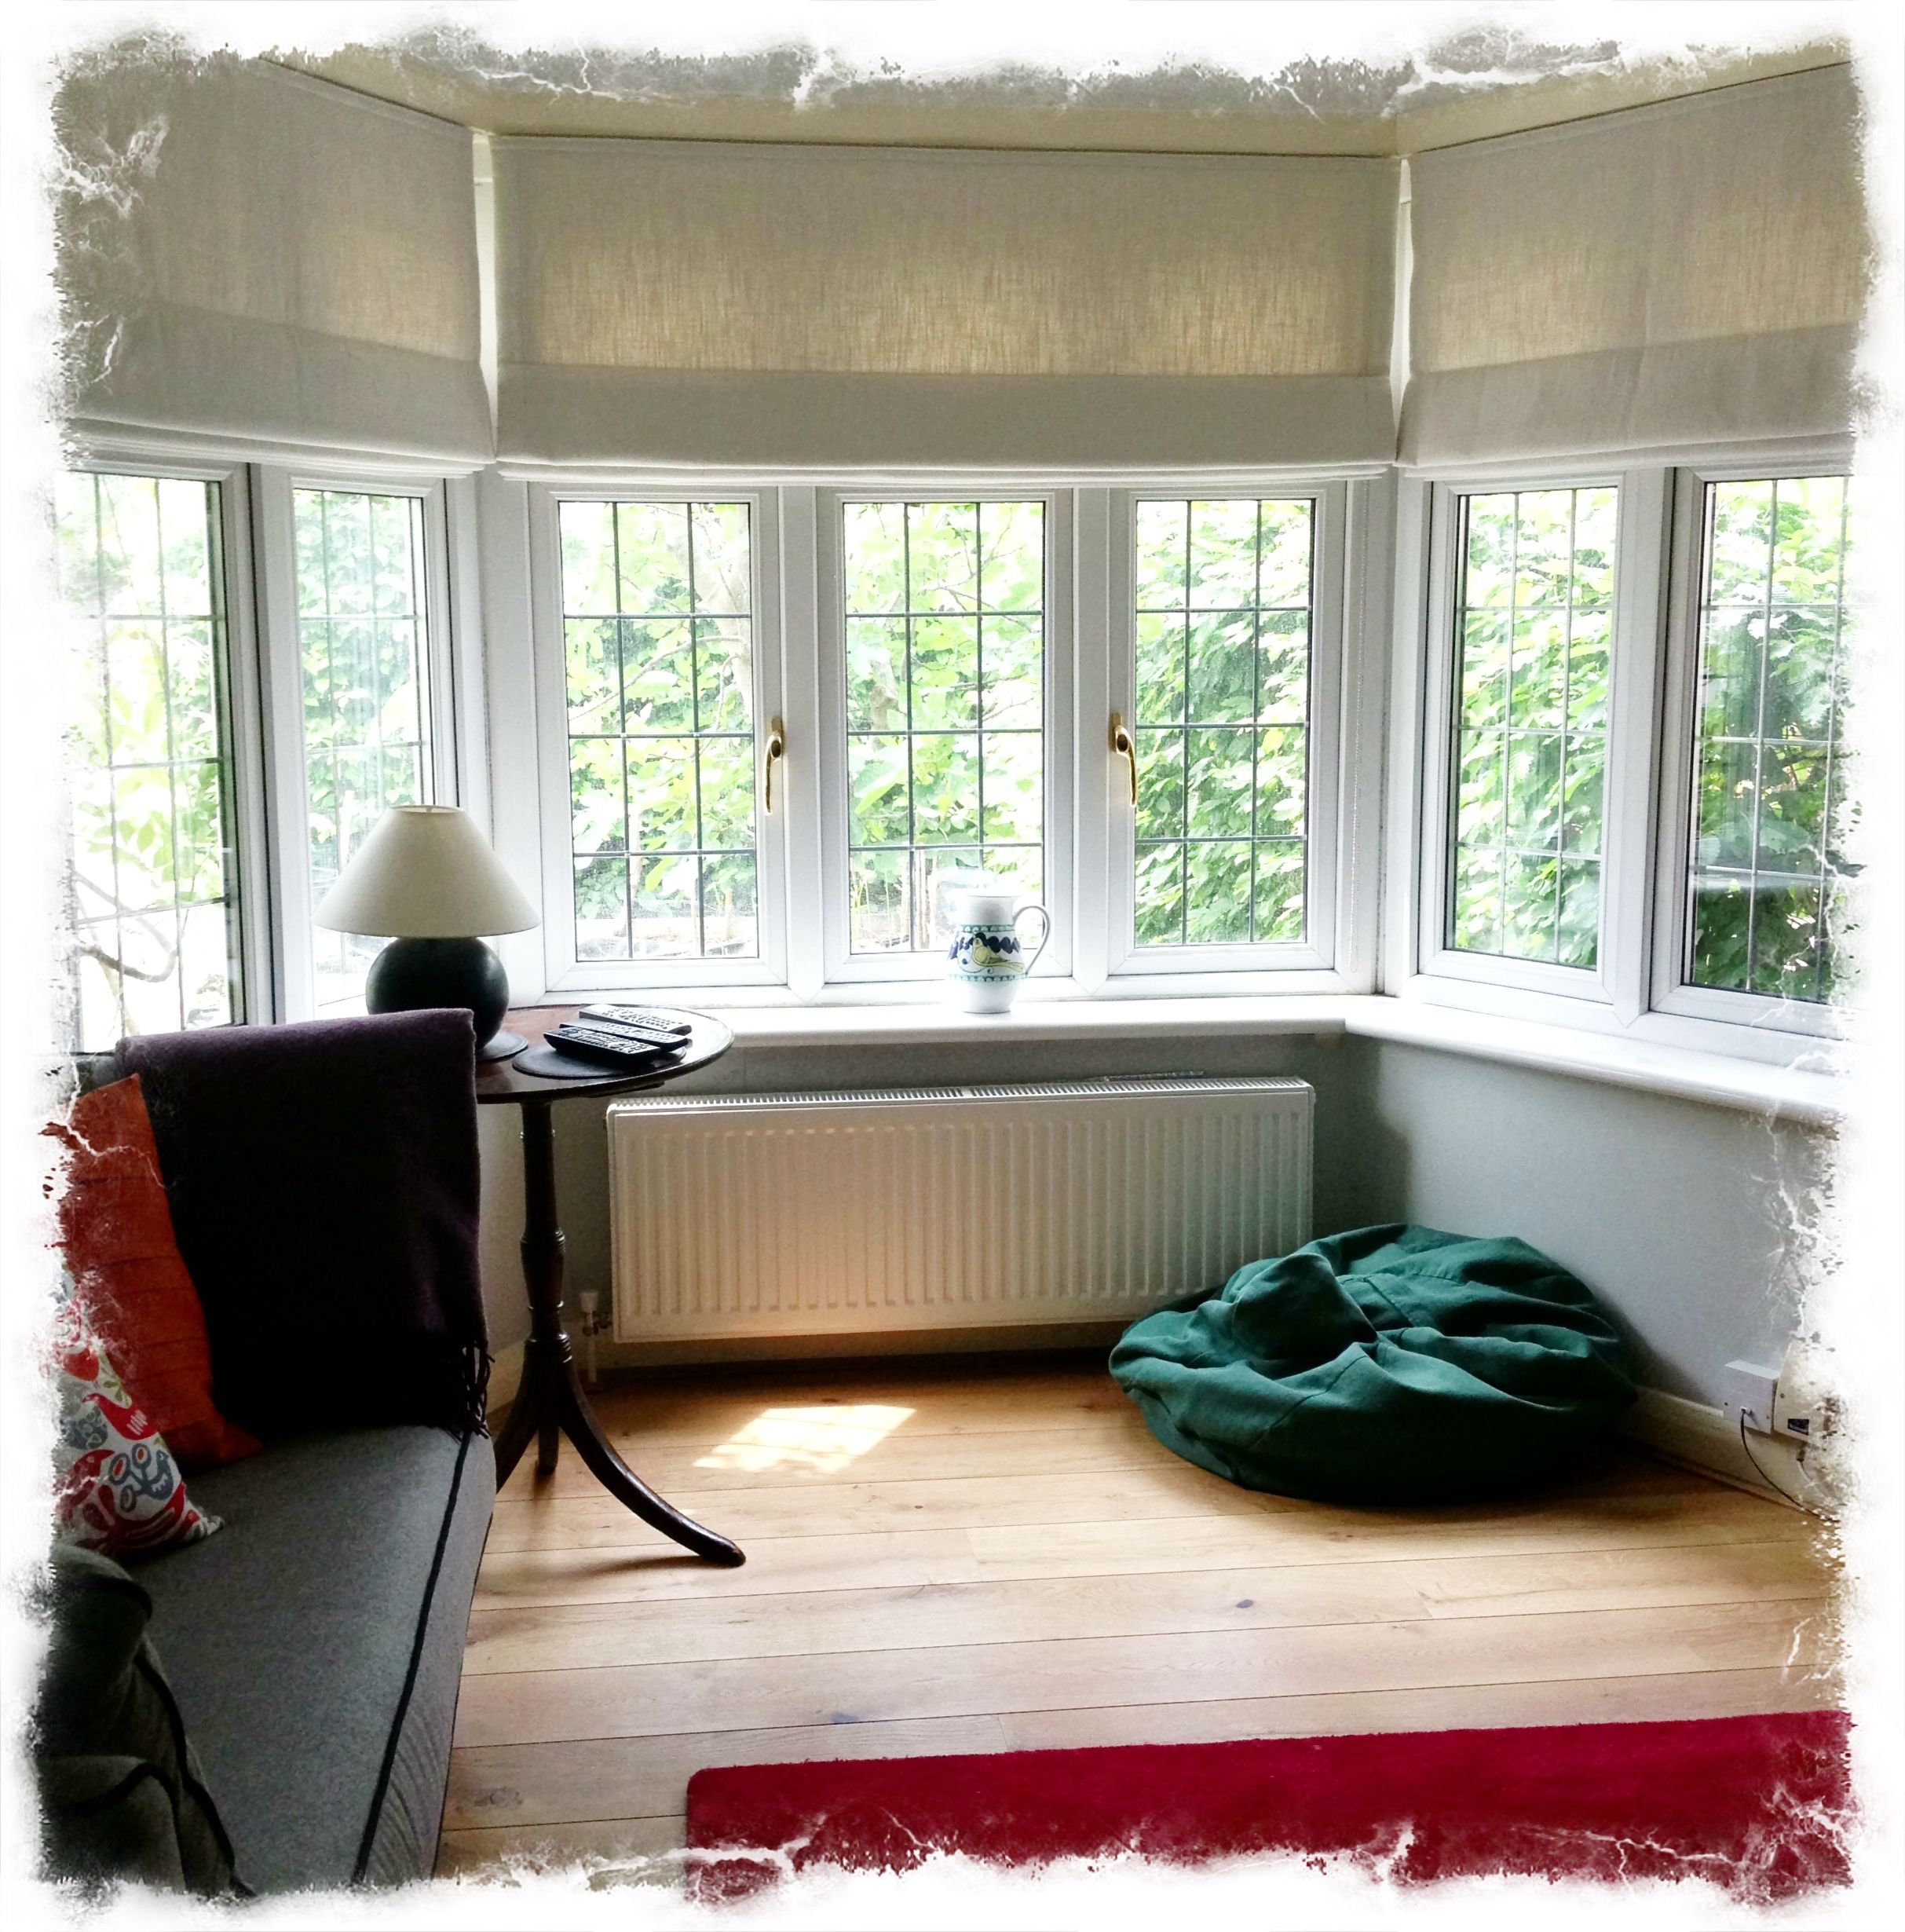 Bay window roller blinds - Lined And Interlined Roman Blinds For A Bay Window Made By Www Curtainlab